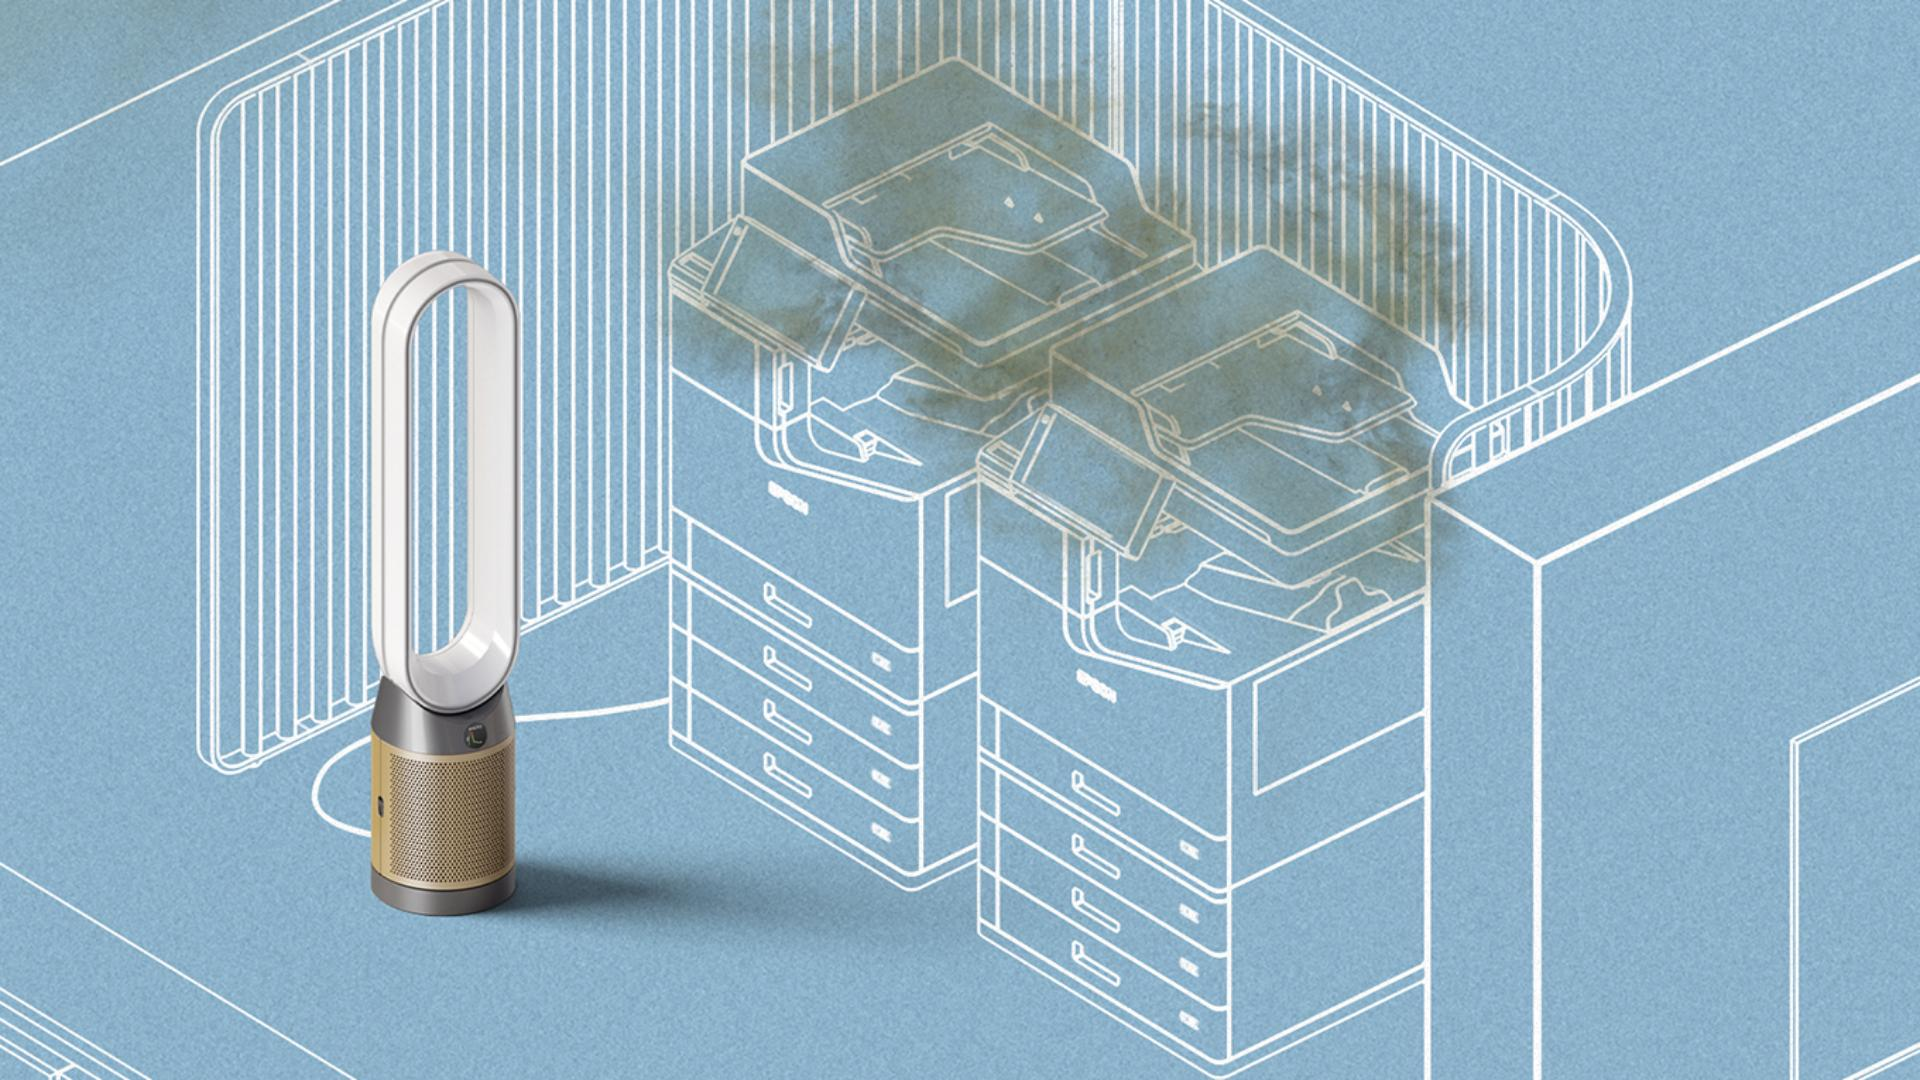 Dyson purifier removing pollutants from air